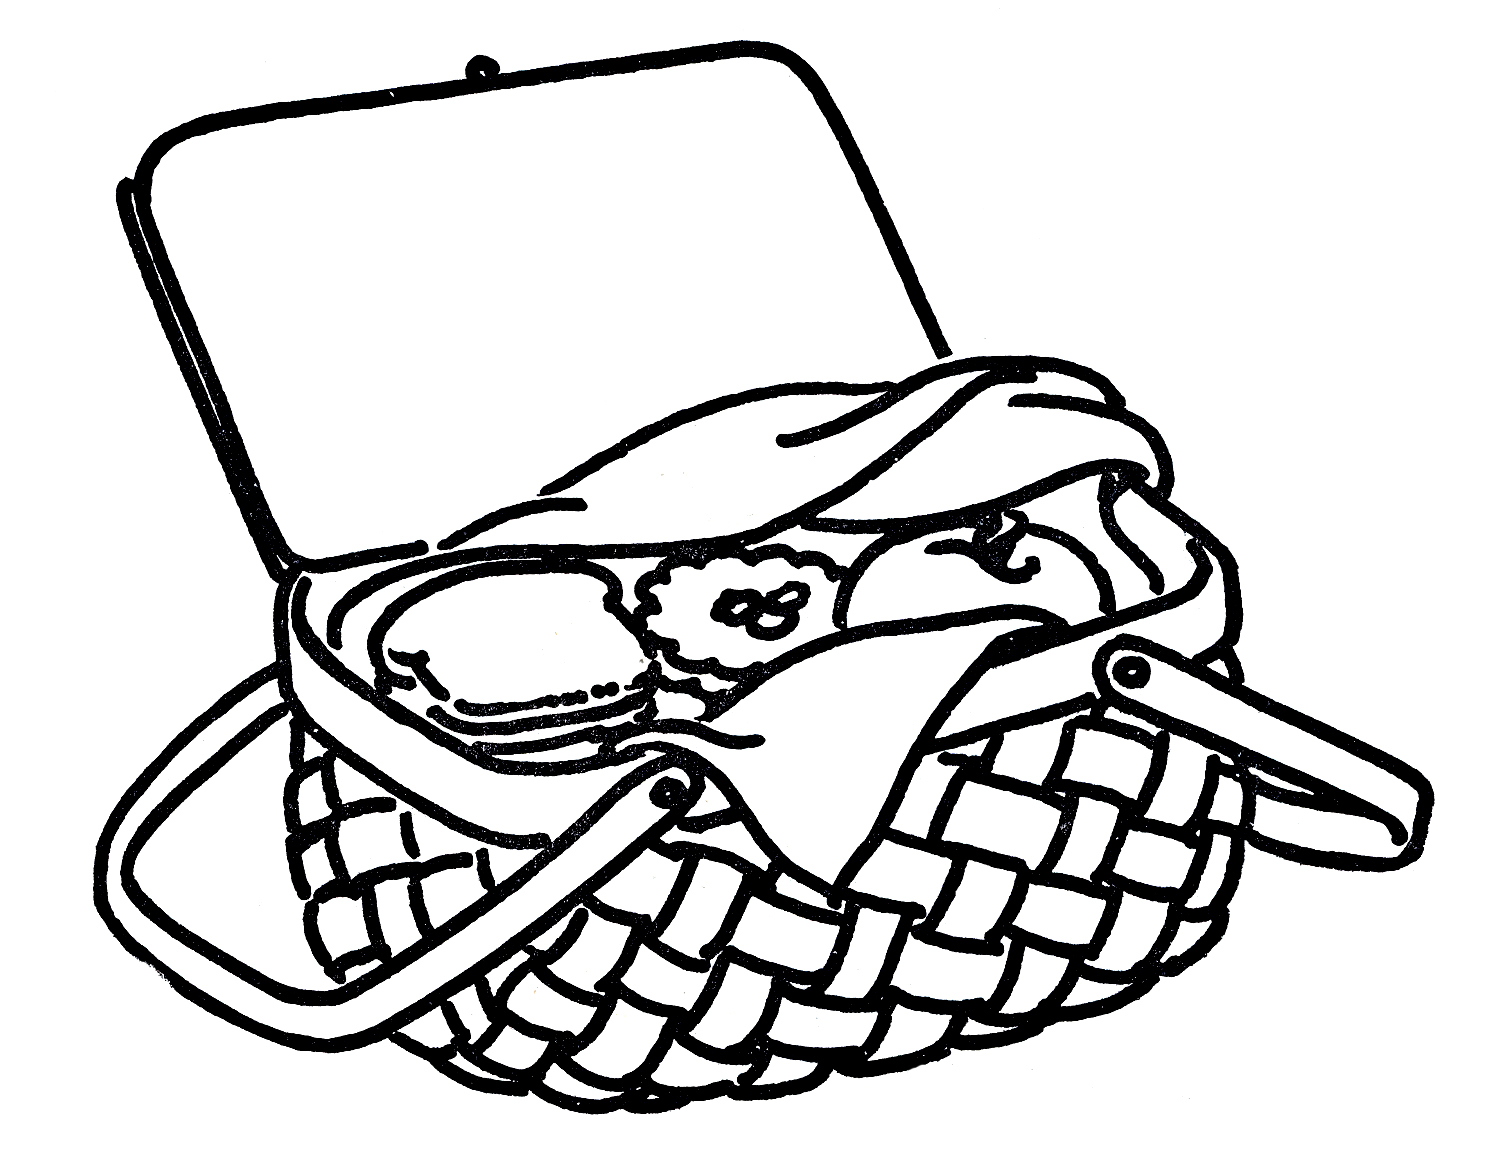 Free Picture Of Picnic Basket Download Free Clip Art Free Clip Art On Clipart Library